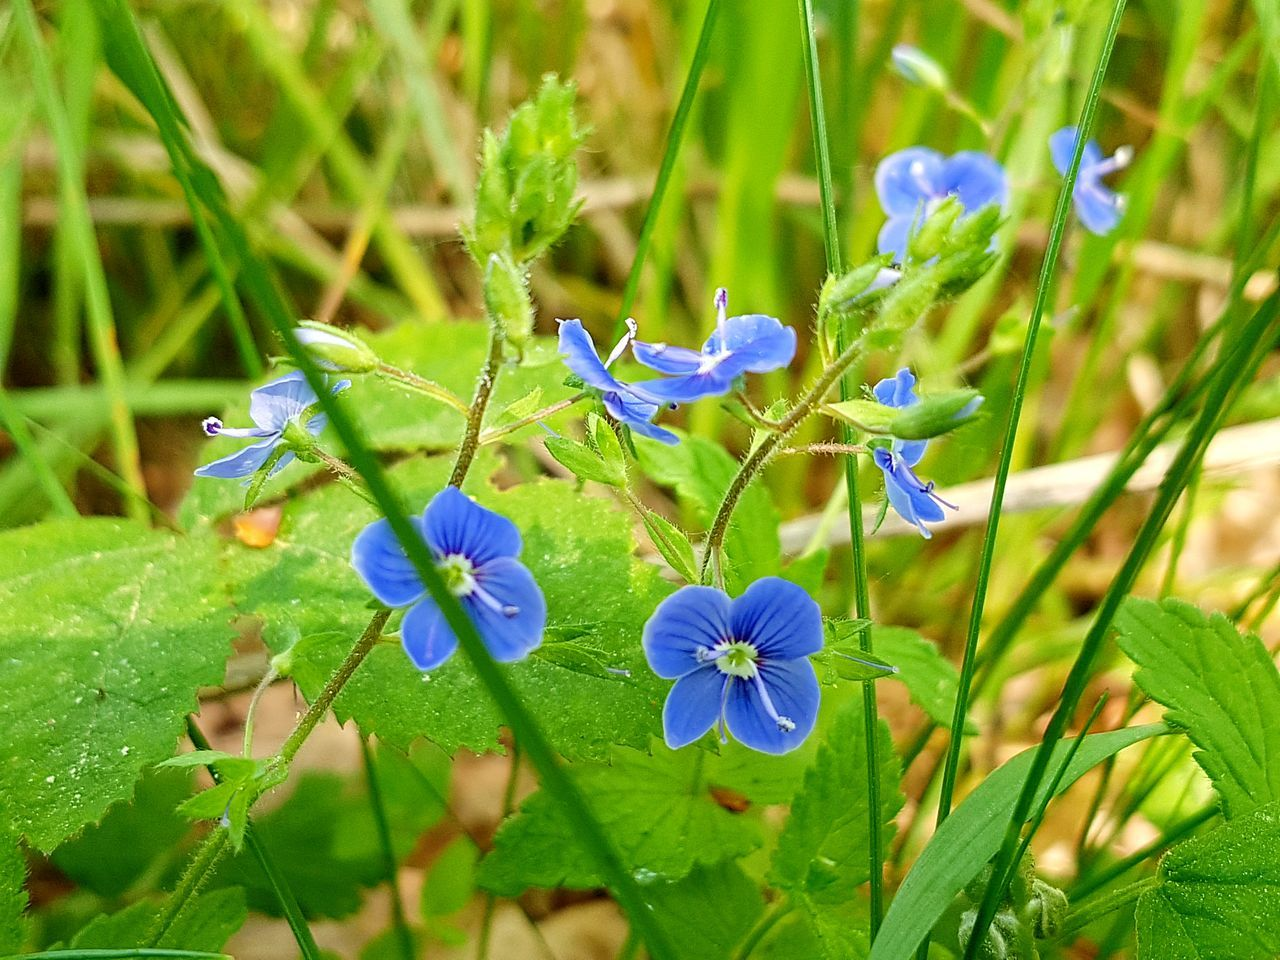 Flower Nature Fragility Plant Beauty In Nature Growth Green Color Day Outdoors No People Freshness Close-up Flower Head Leaf Grass Wildflowers In Bloom Wildflowers Blue Flowers Nature Springtime Uncultivated Freshness Backgrounds Macro Nature Ladyphotographerofthemonth